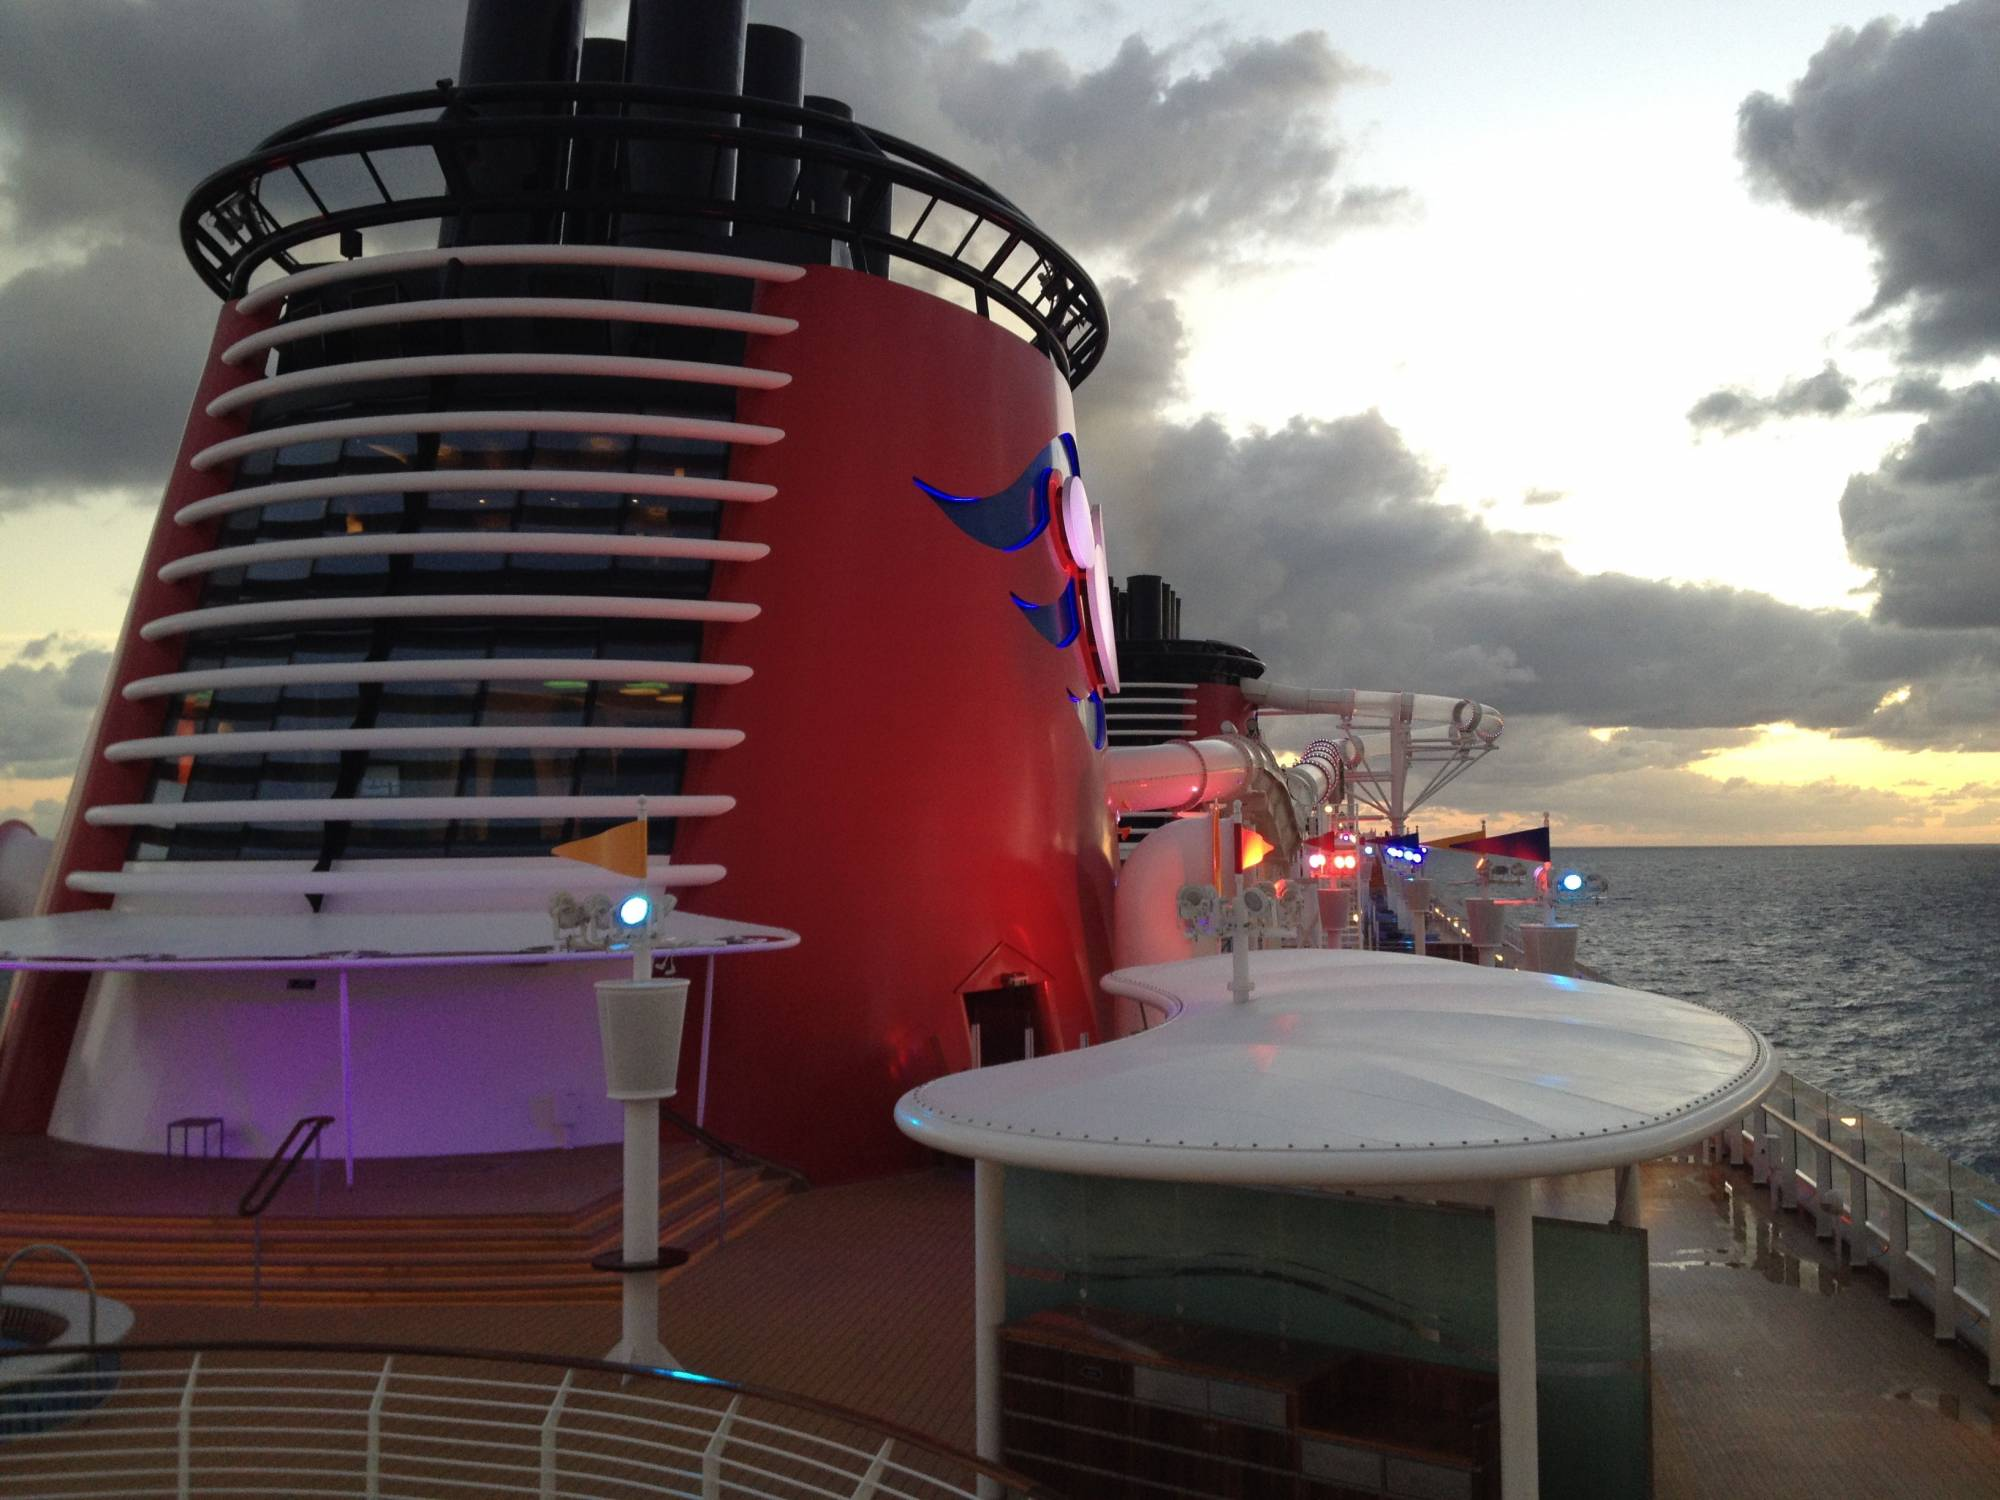 Disney Cruise Line is not just for kids | PassPorter.com